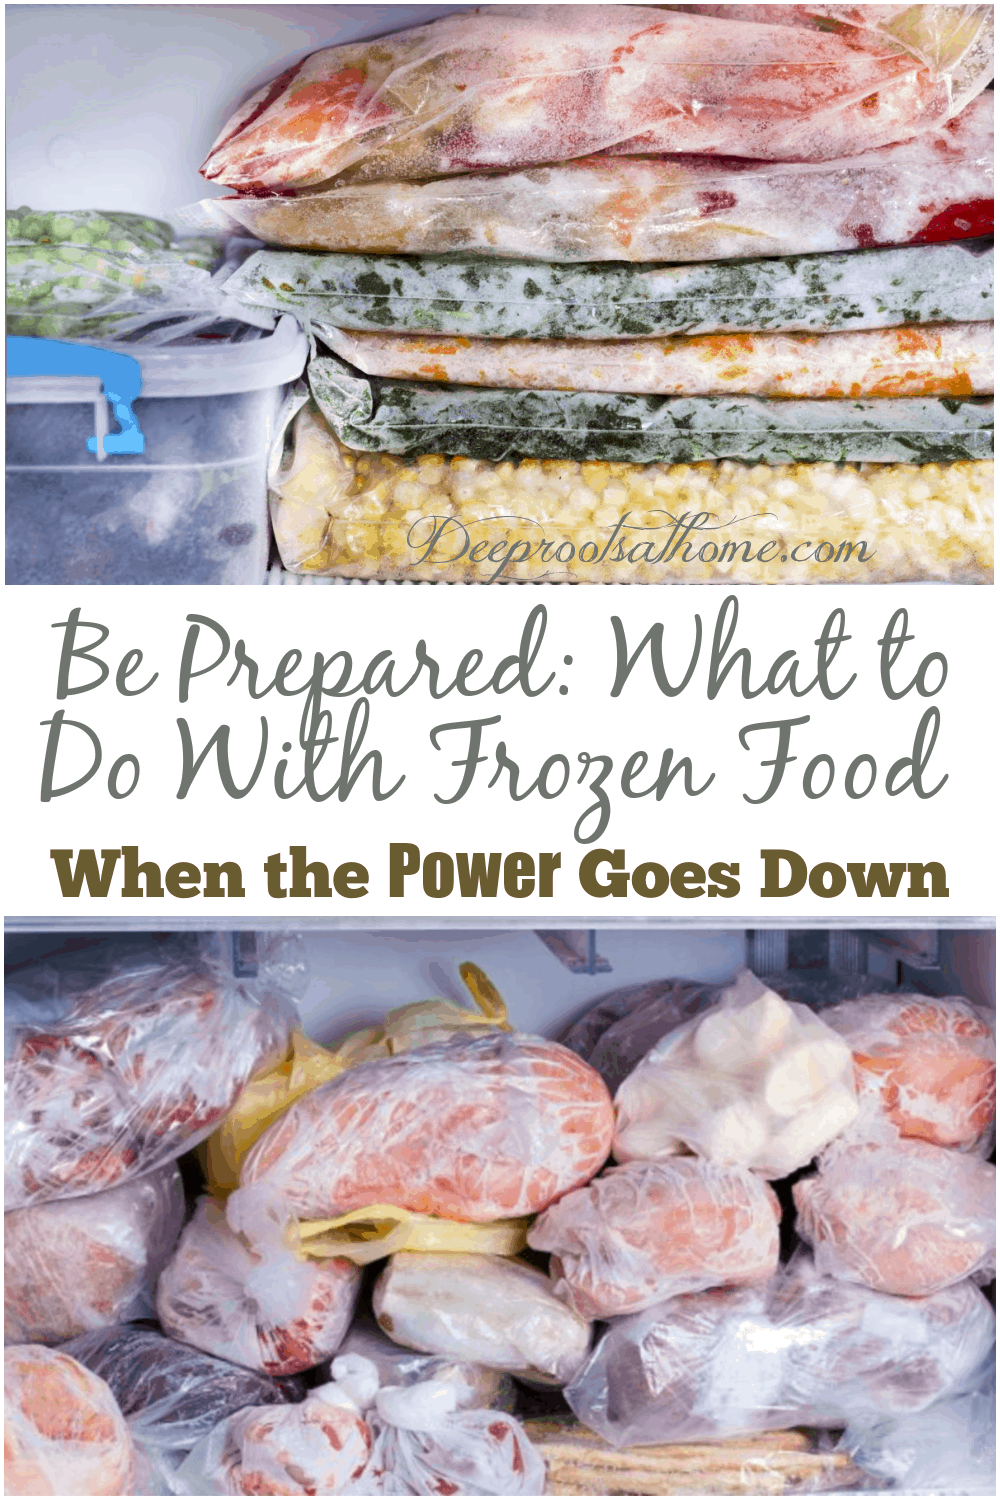 Be Prepared: What to Do With Frozen Food When the Power Goes Down